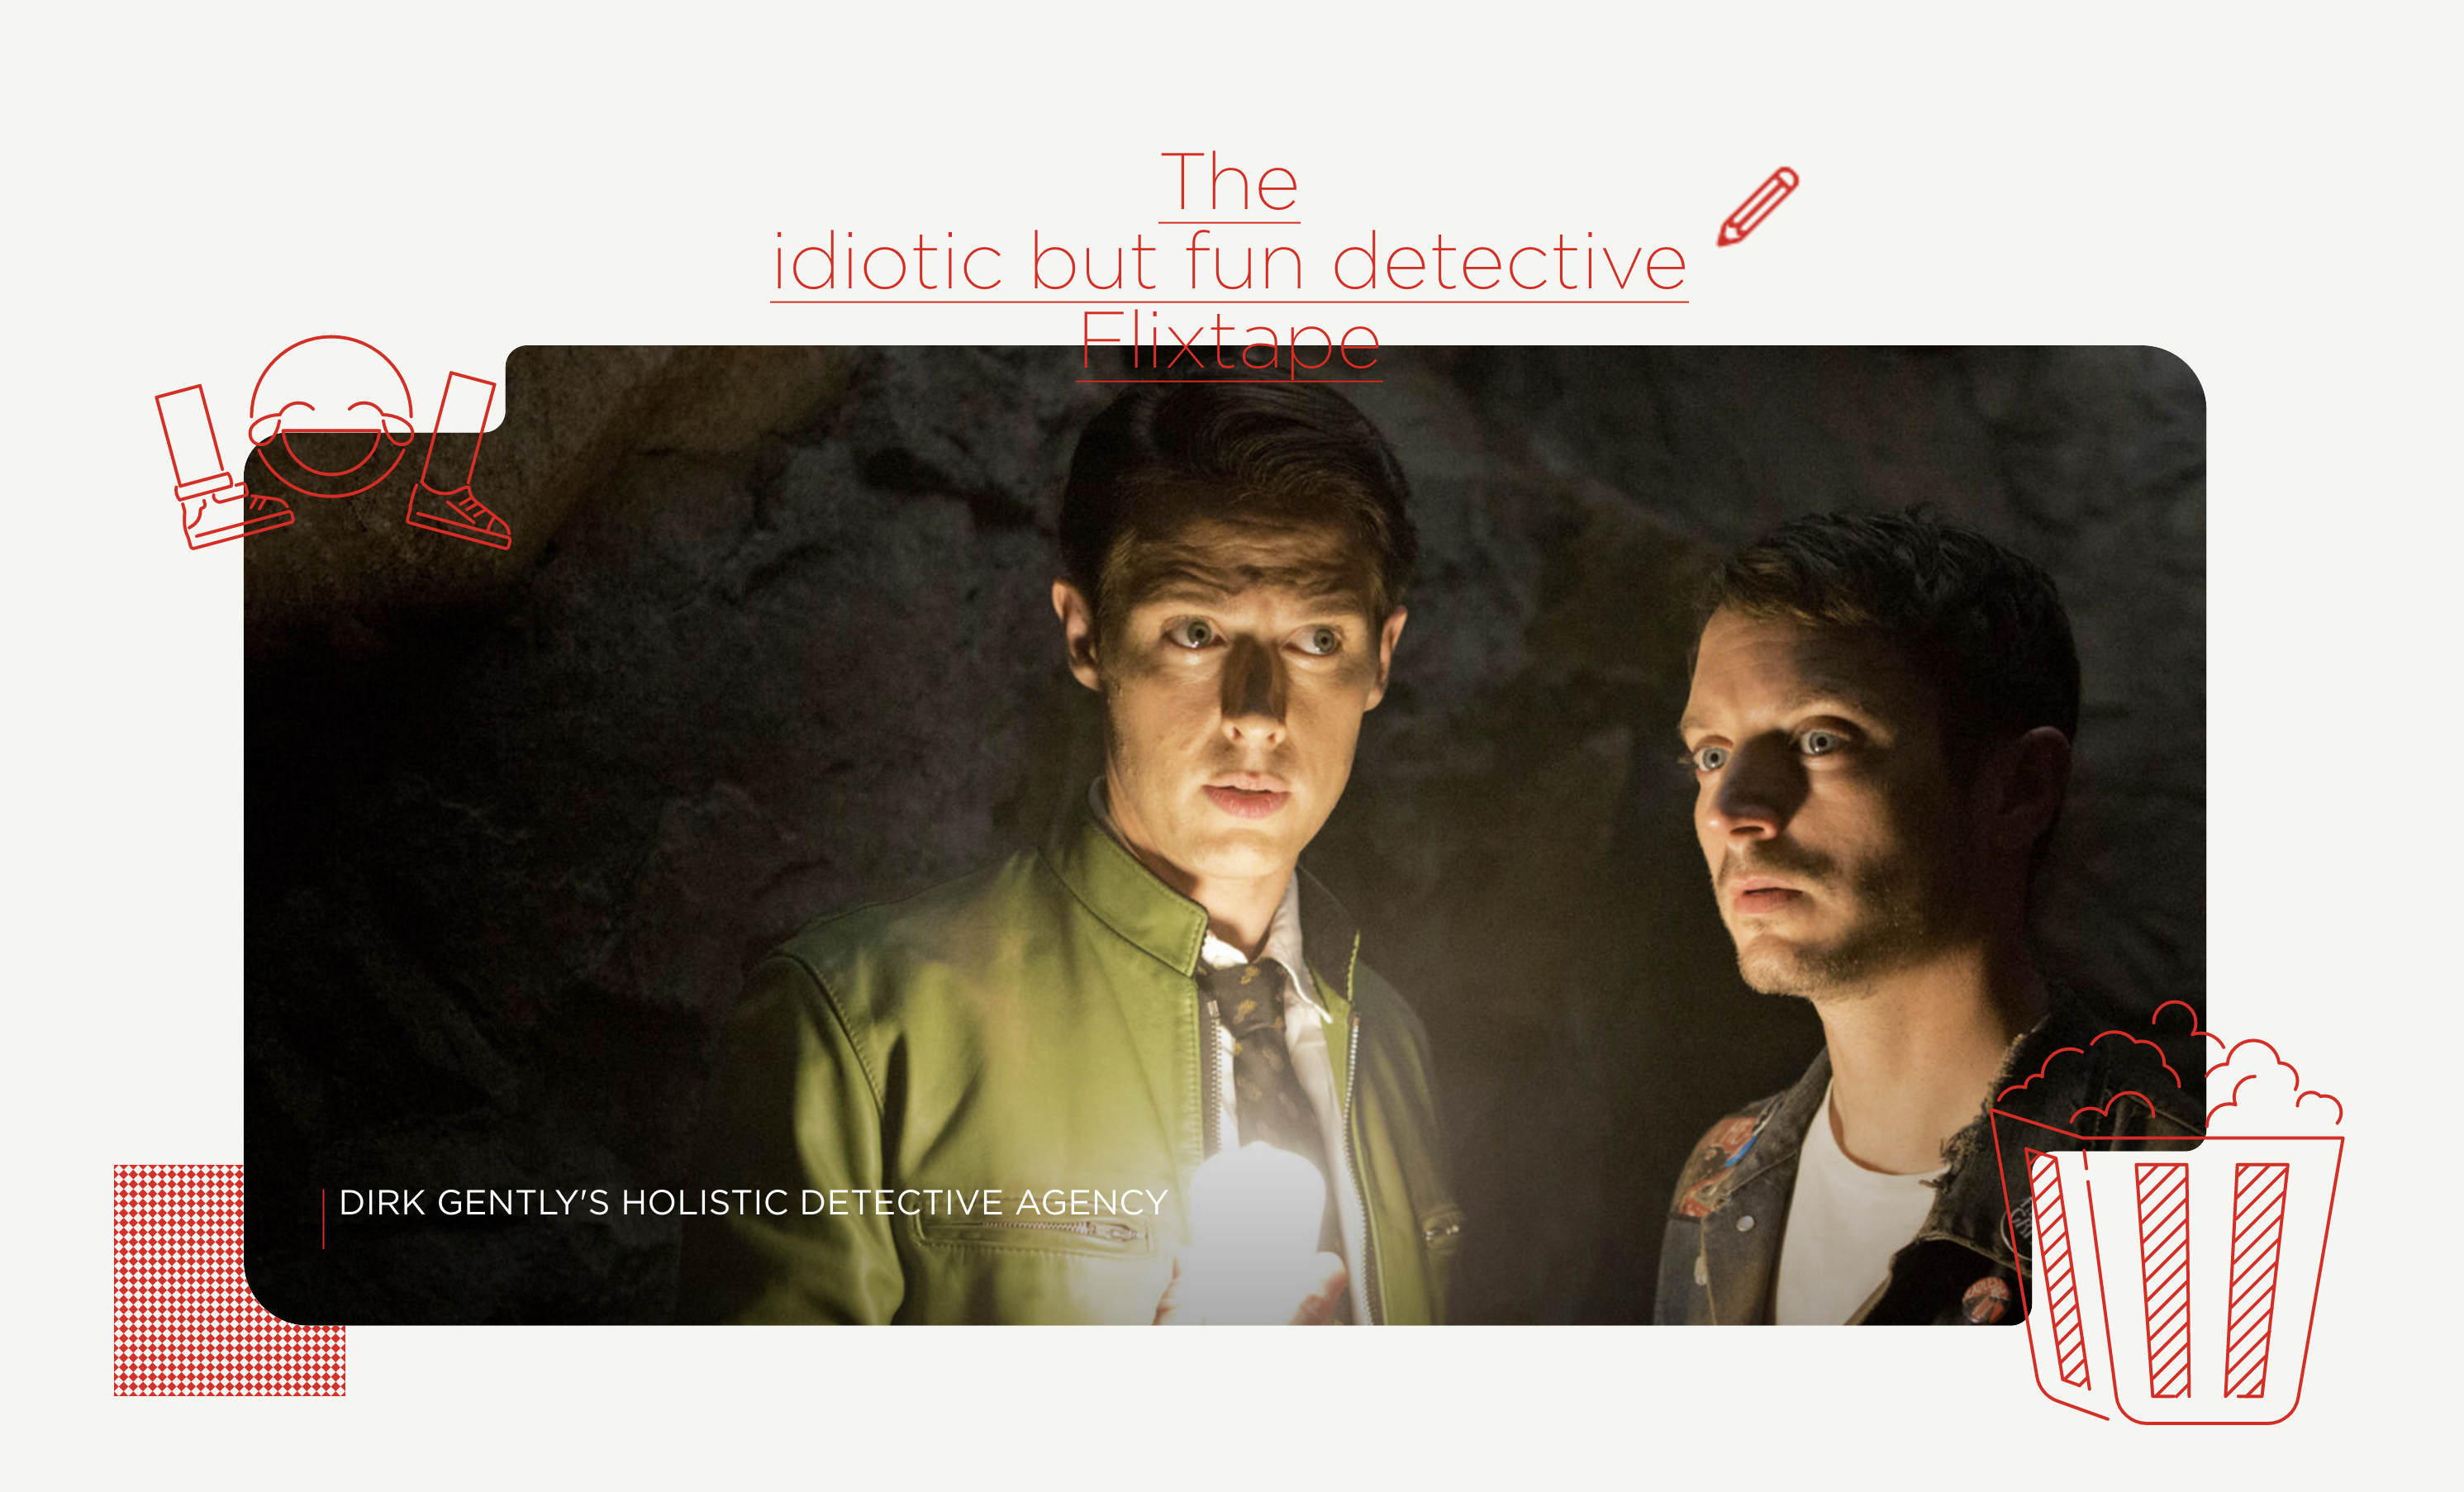 The Idiotic but fun detective flixtape